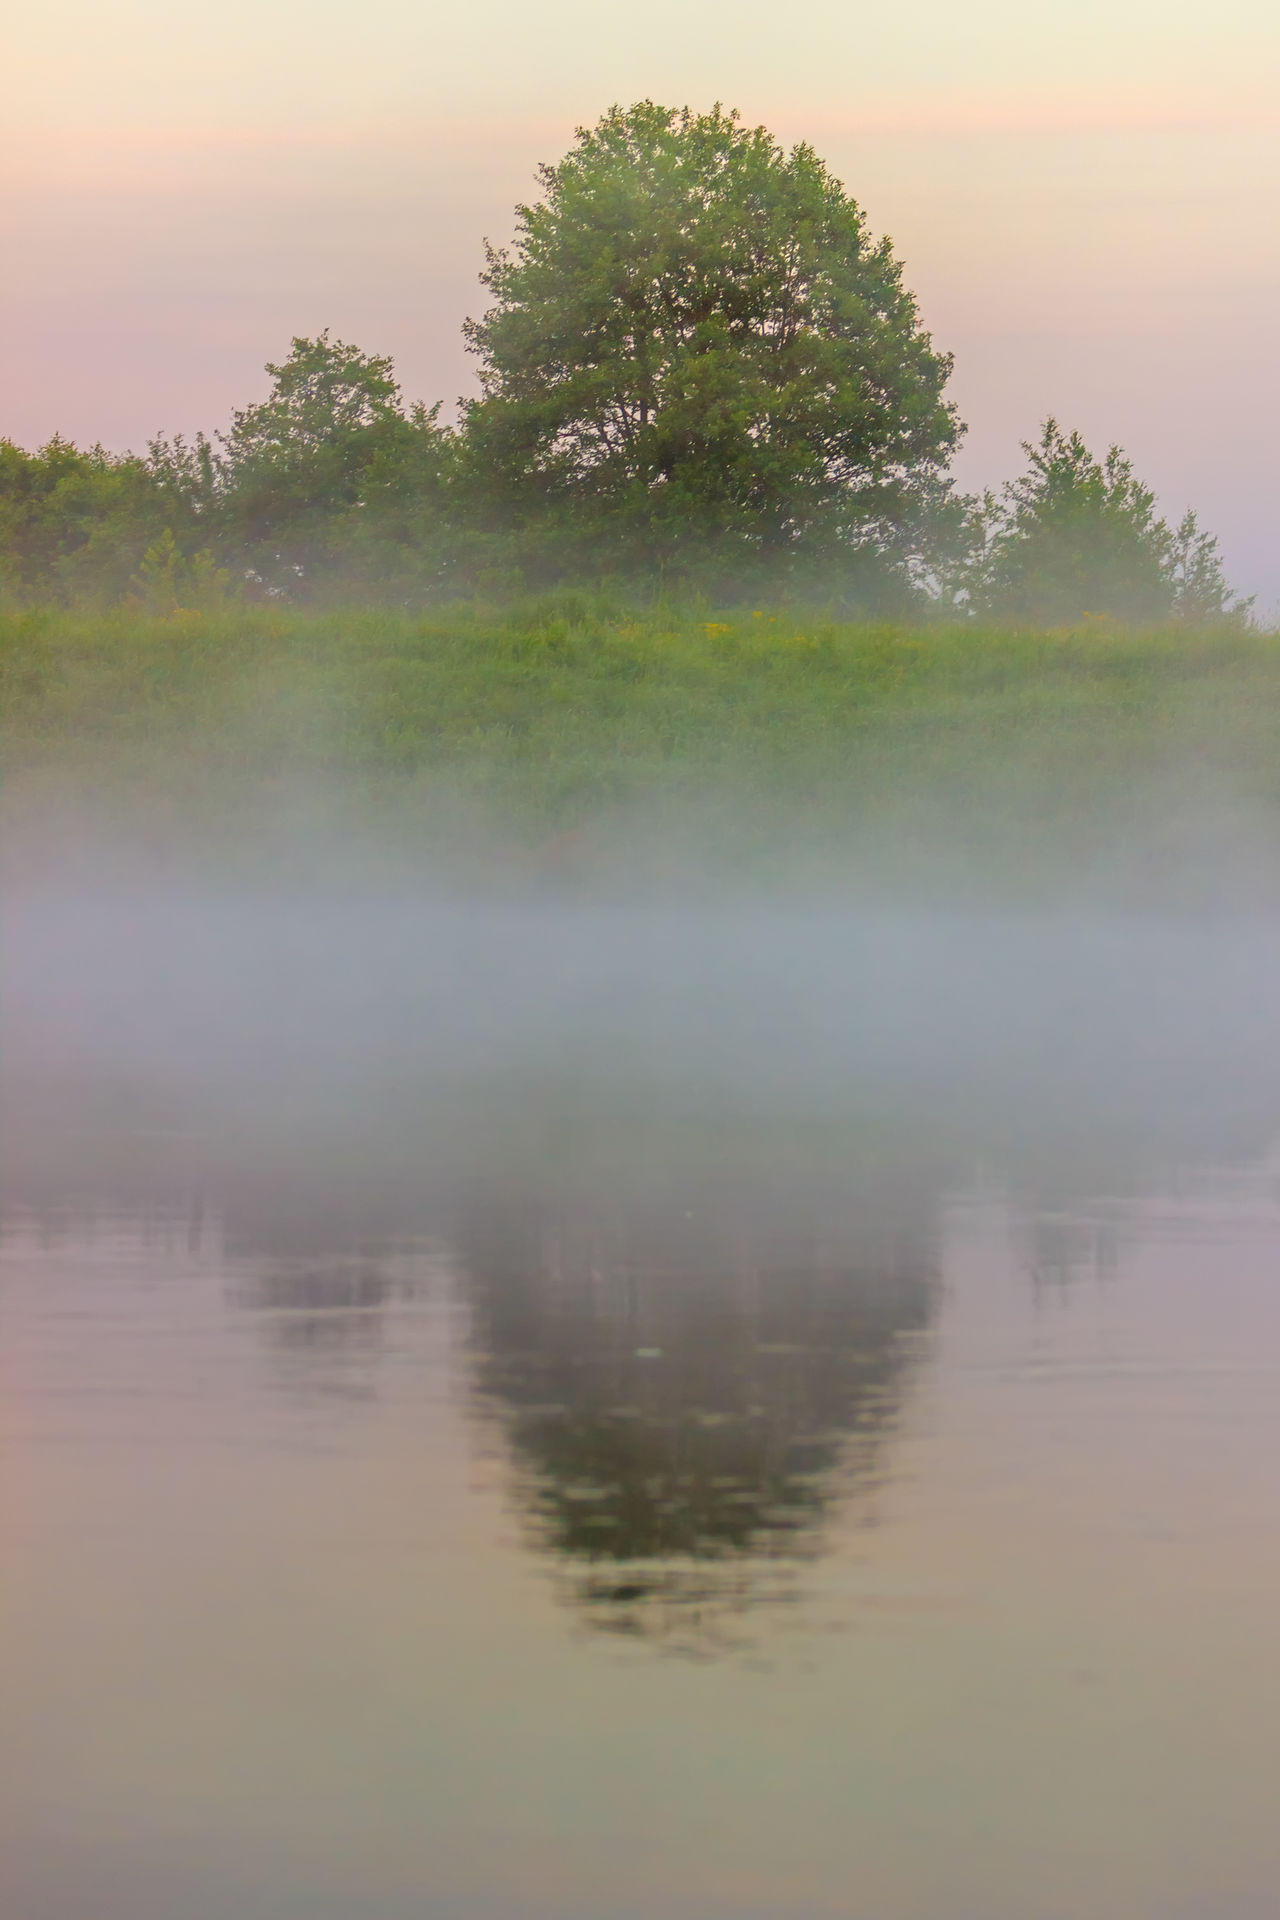 Fog over the river. Early morning. Beauty Beauty In Nature Day Fog Lake Landscape Morning Nature No People Outdoors Reflection River Scenics Tranquility Tree Water